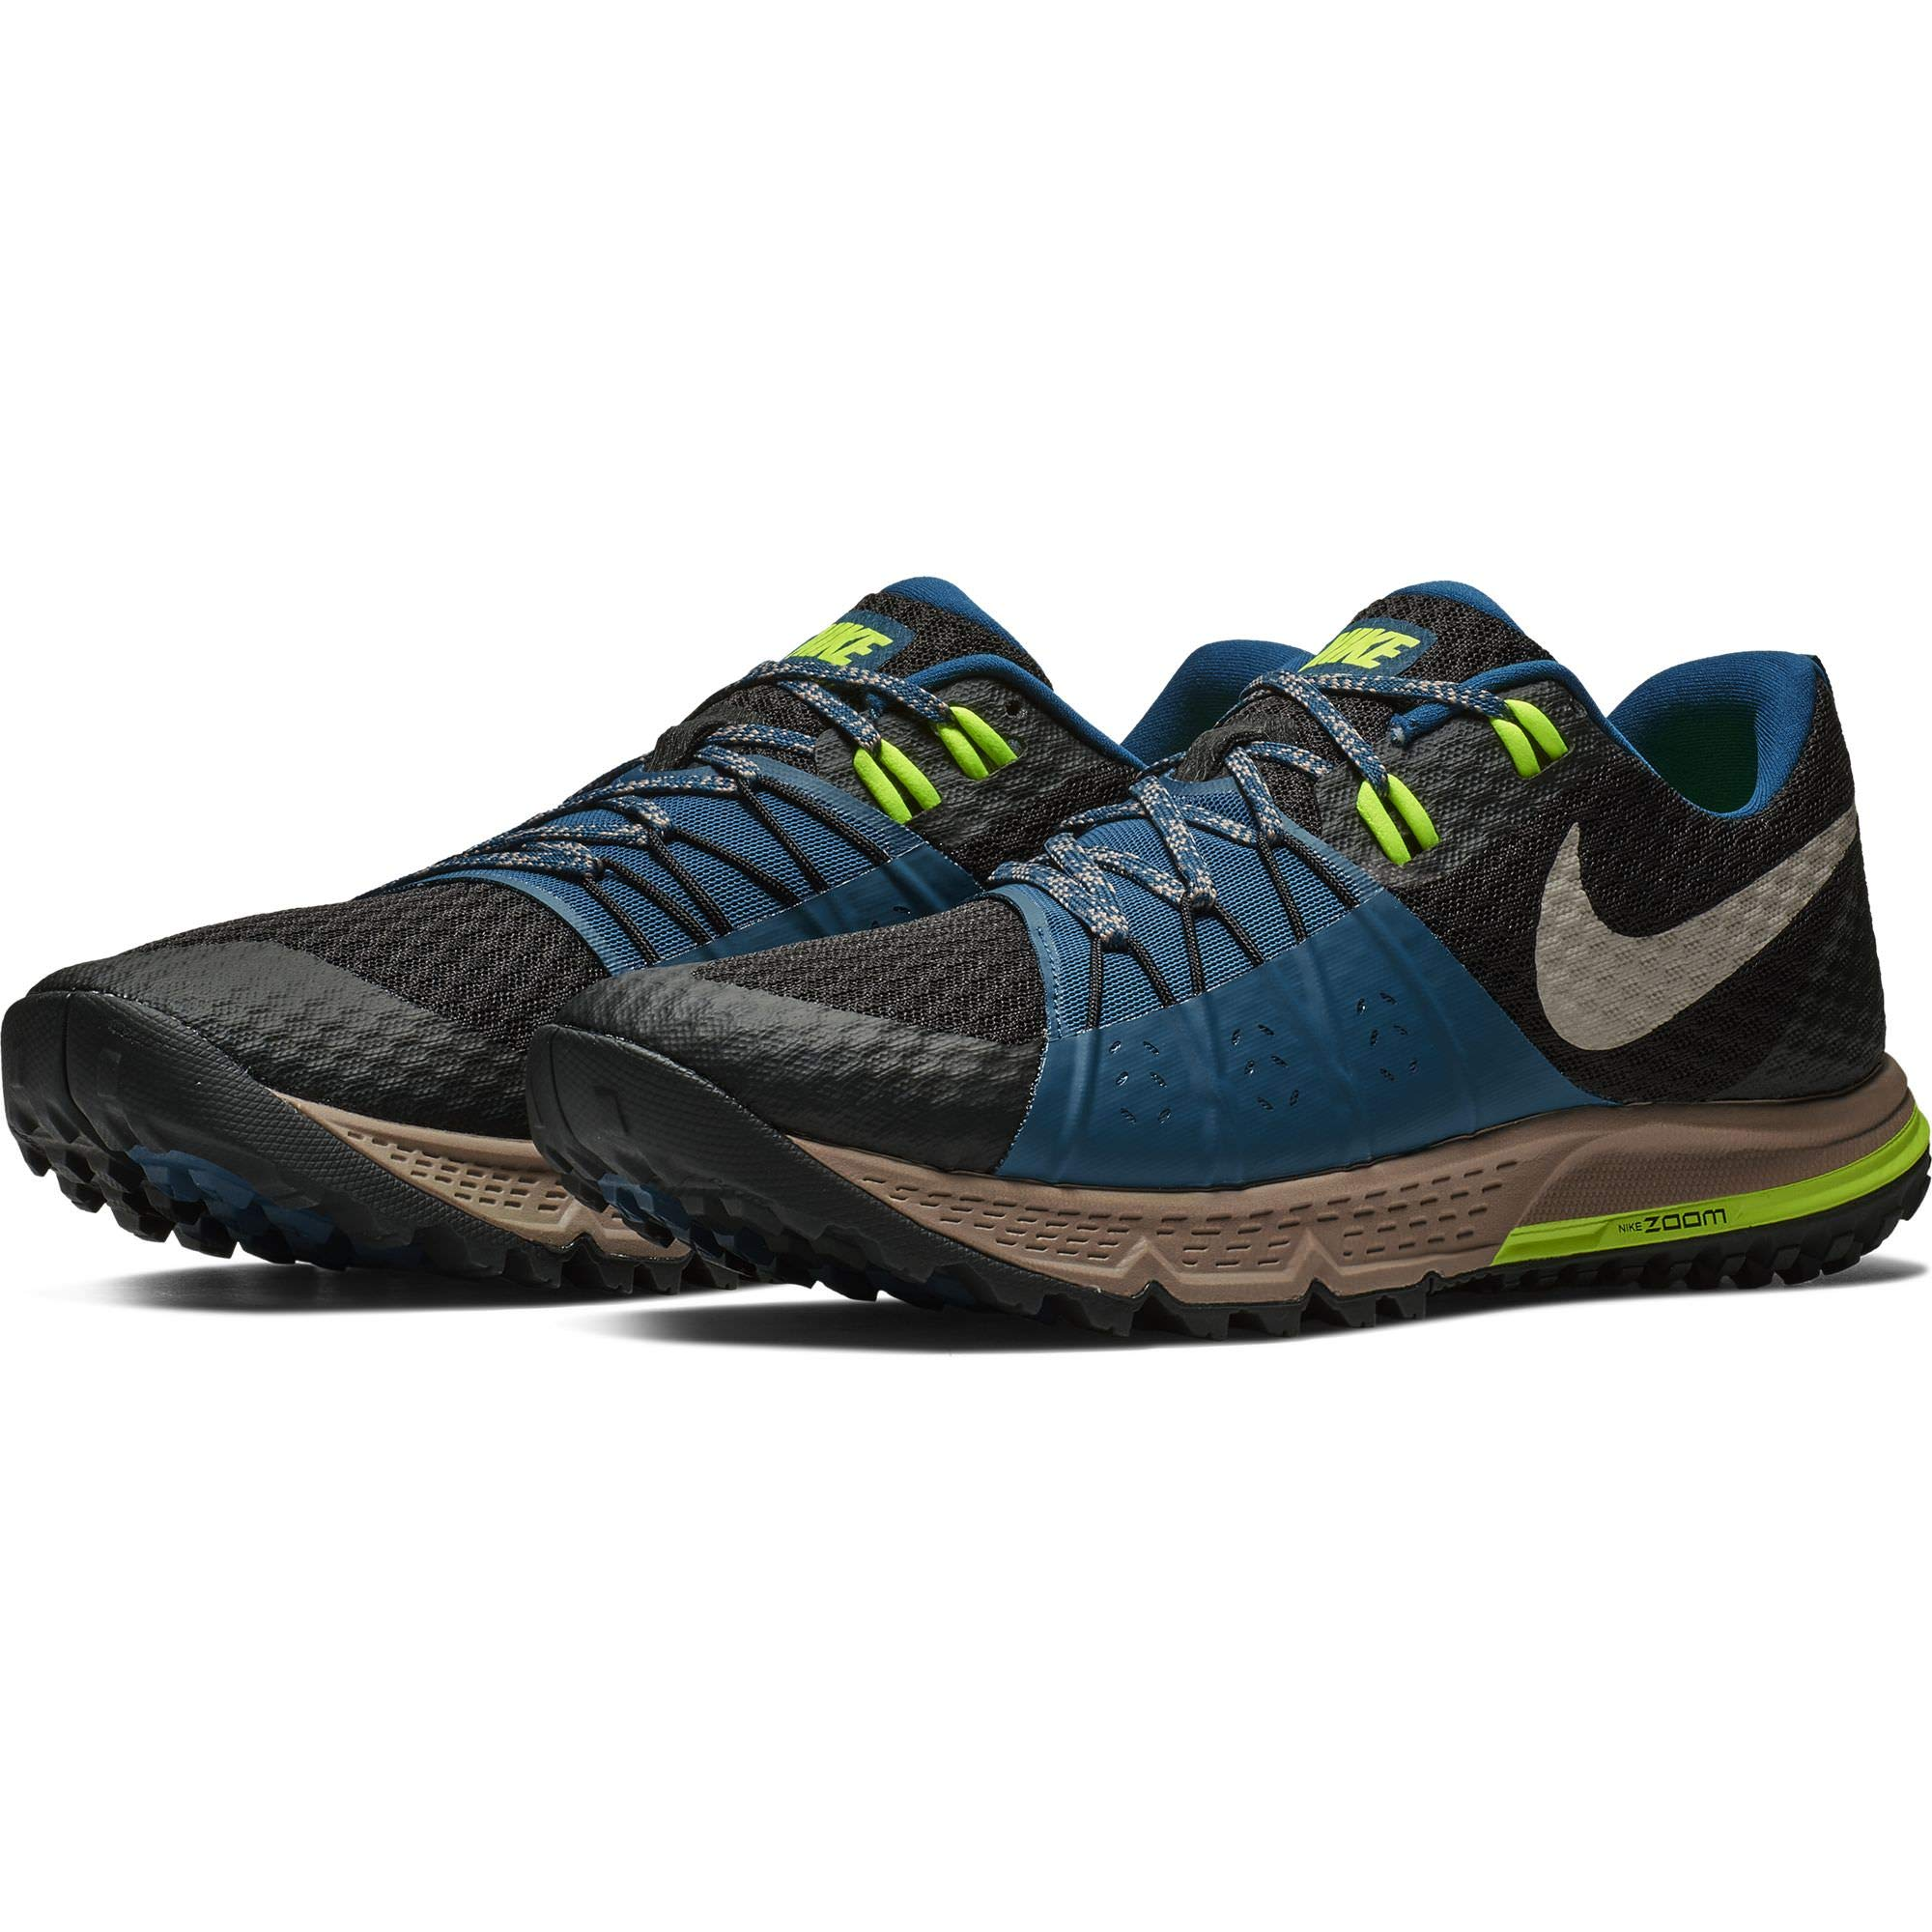 93a6143e07b Galleon - Nike Men s Air Zoom Wildhorse 4 Running Shoe Black Desert  Sand-Blue Force 9.5